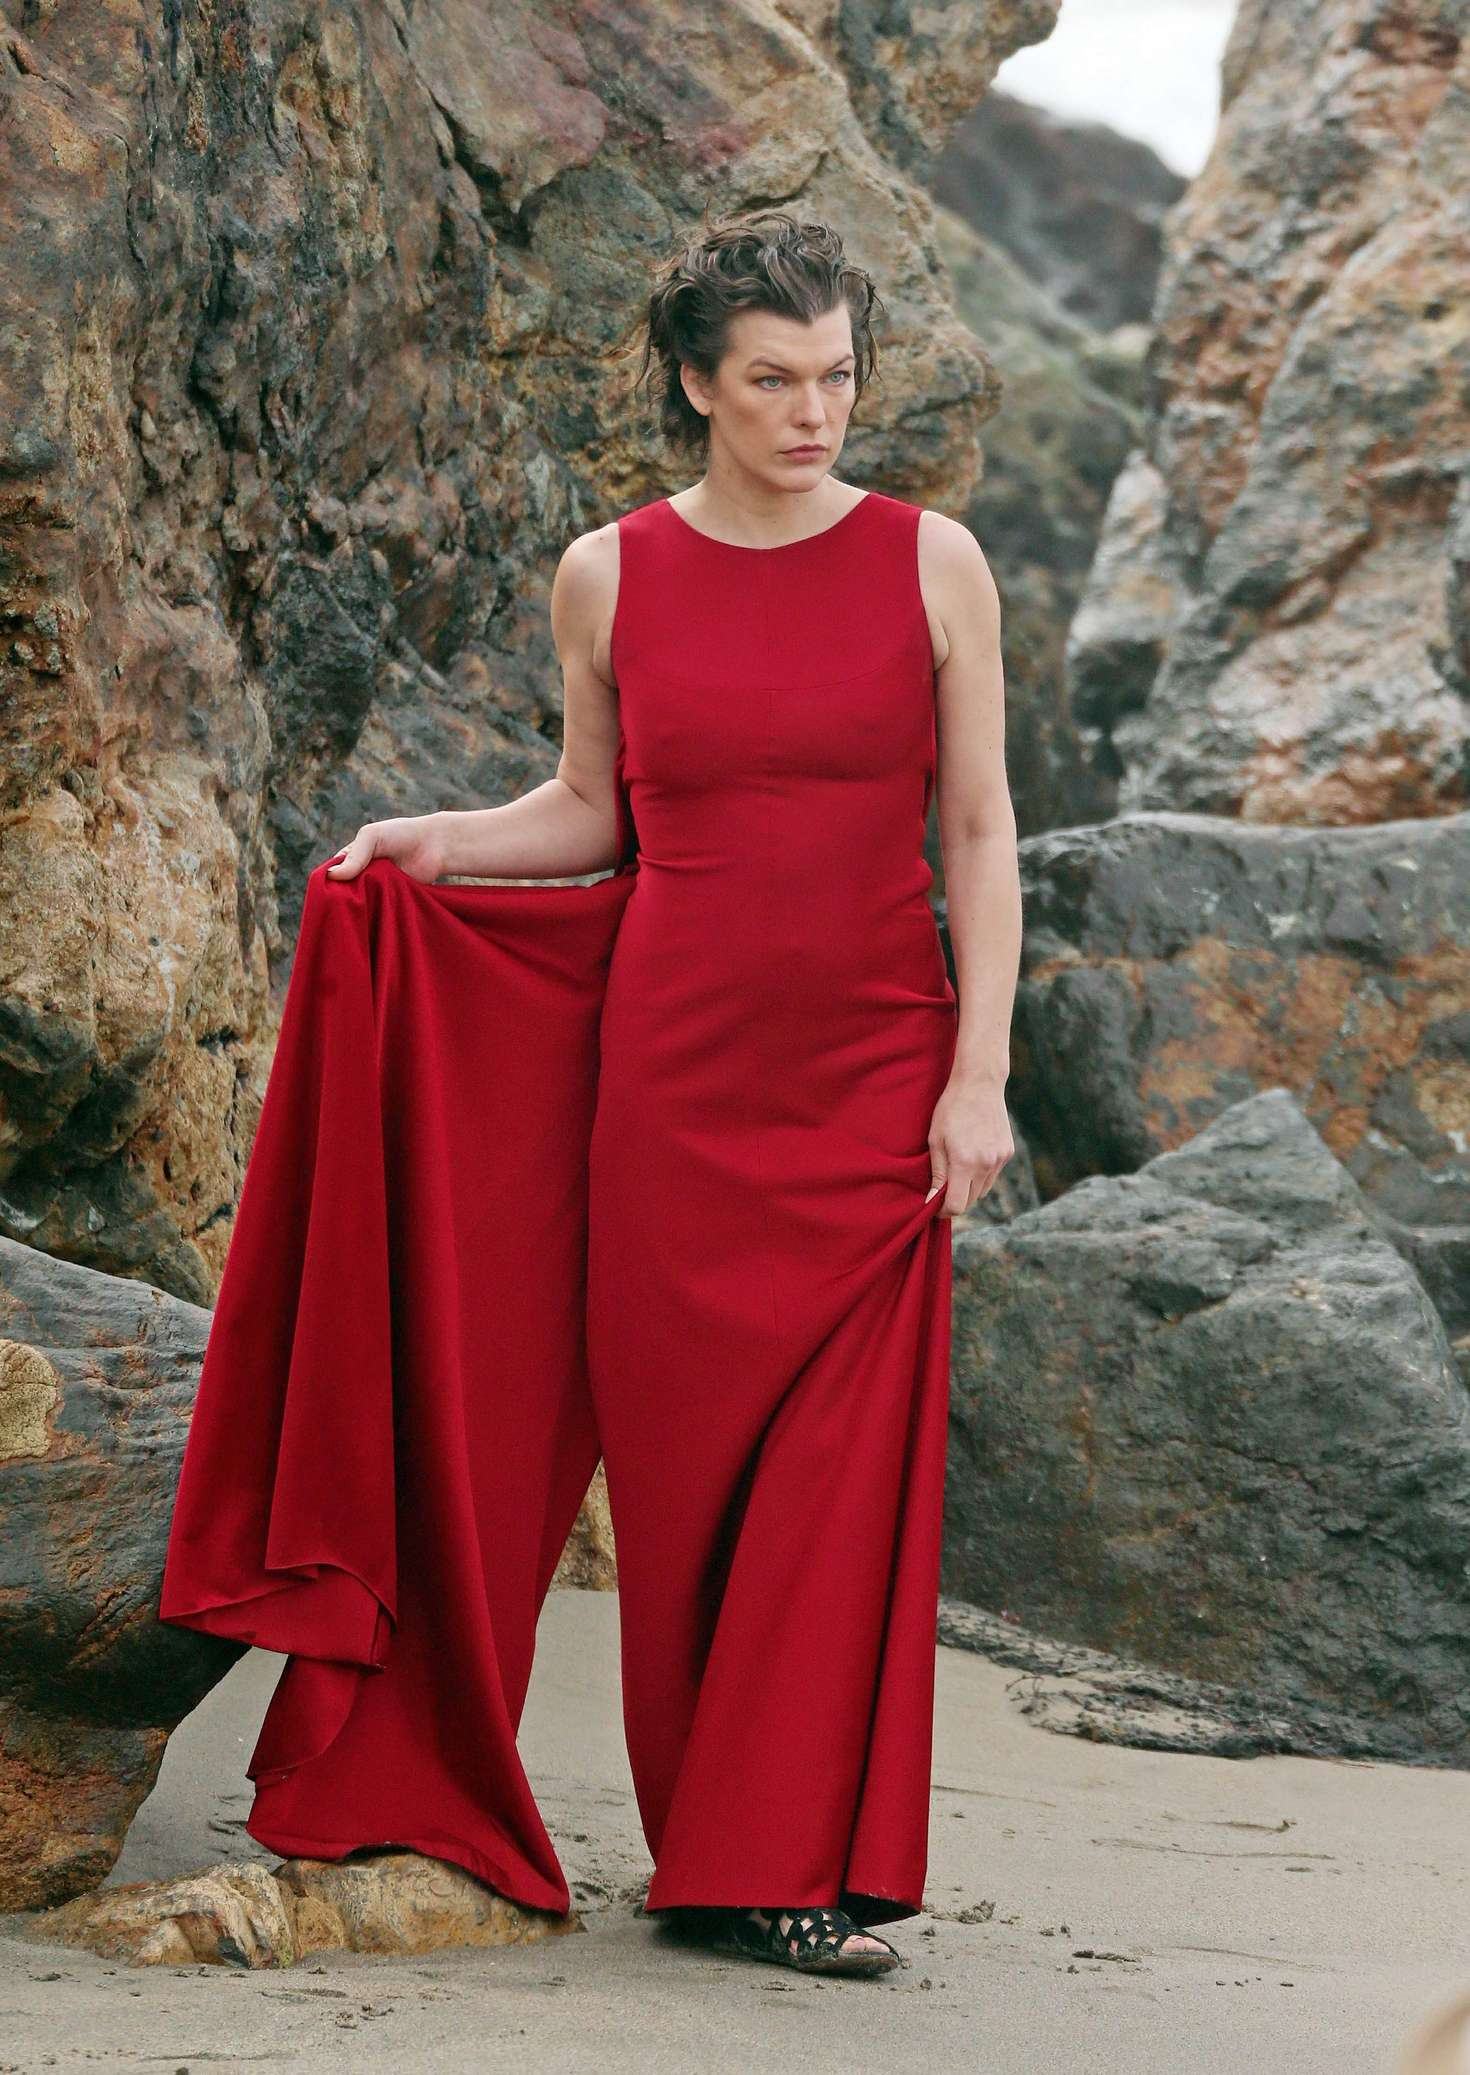 milla jovovich in red dress on photoshoot 12 gotceleb